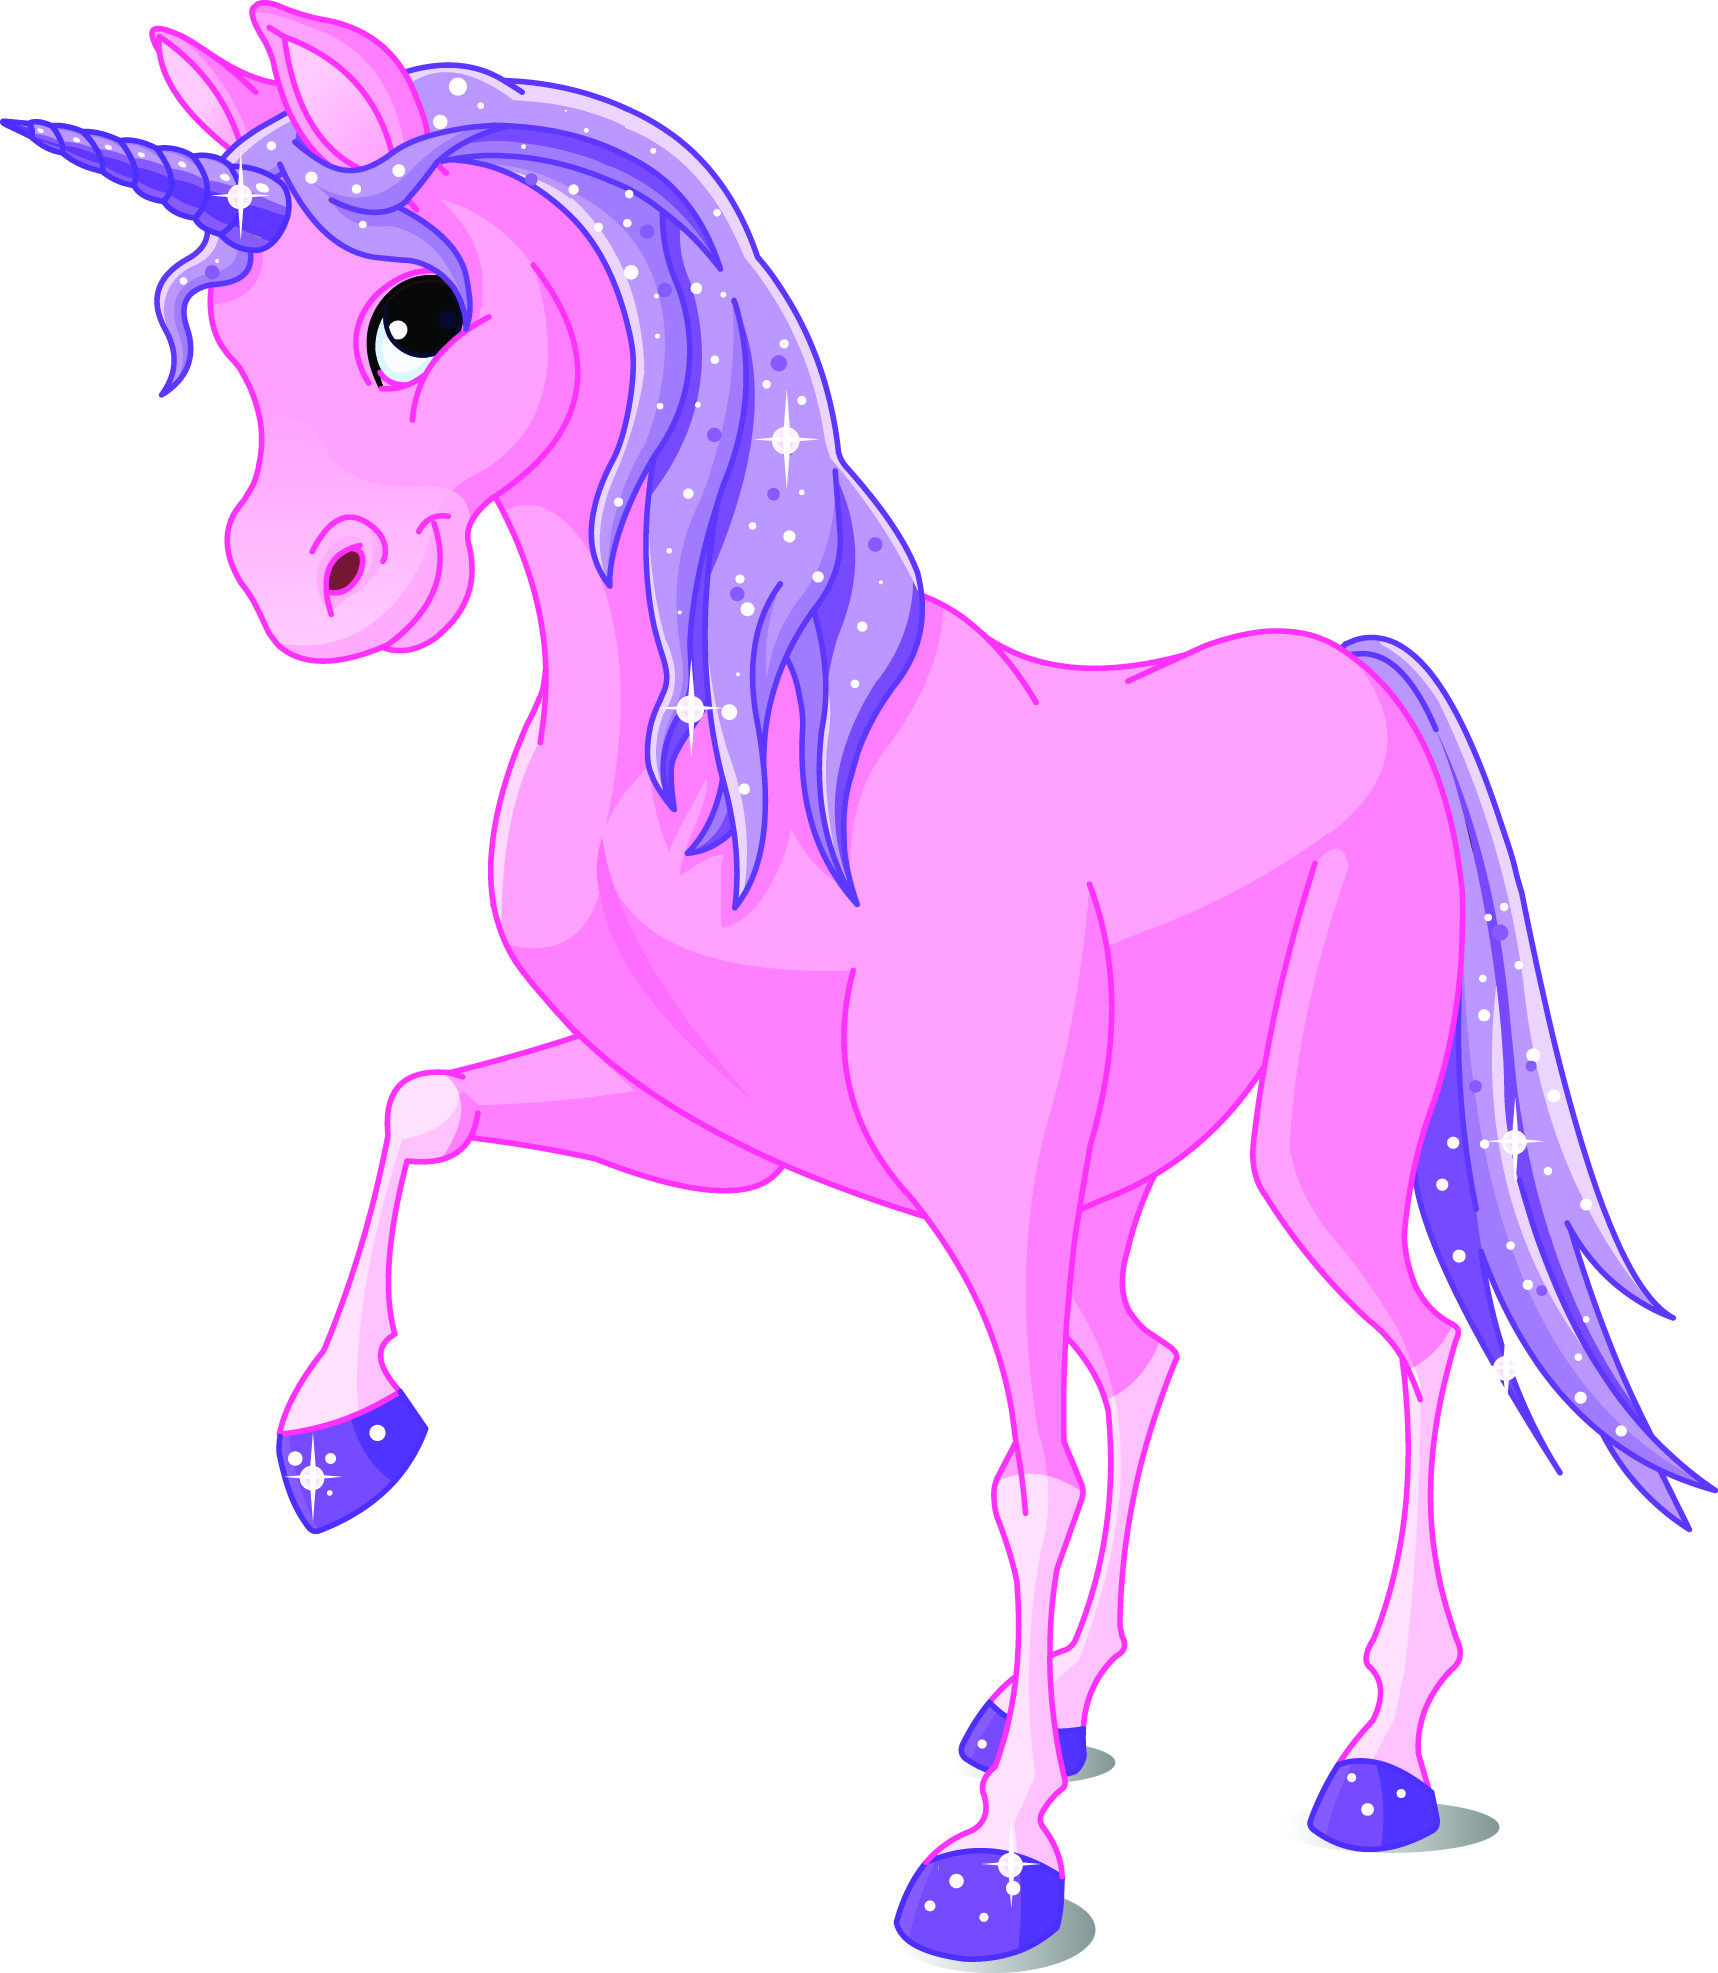 Royalty Free Clipart Illustration Of A Cute Pink And Purple Winged Unicorn Banner Label Description From Clipartof